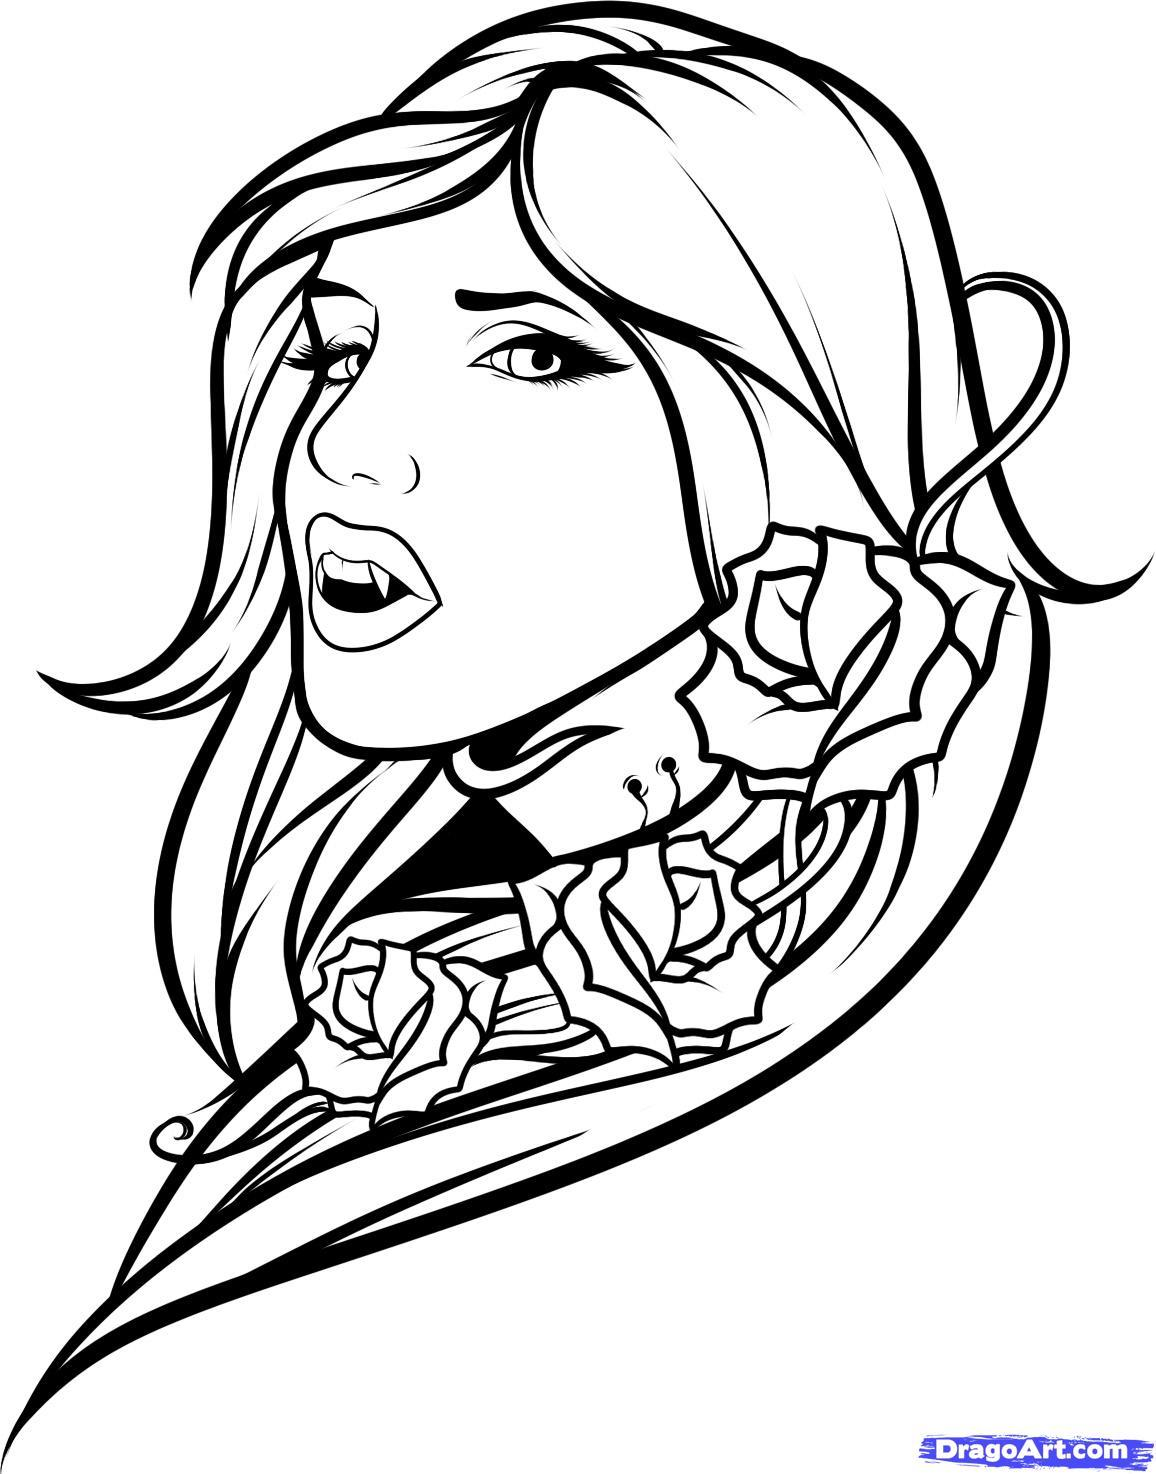 1156x1474 Fascinating Vampire Girlvm Colouring Pages U Bats Image